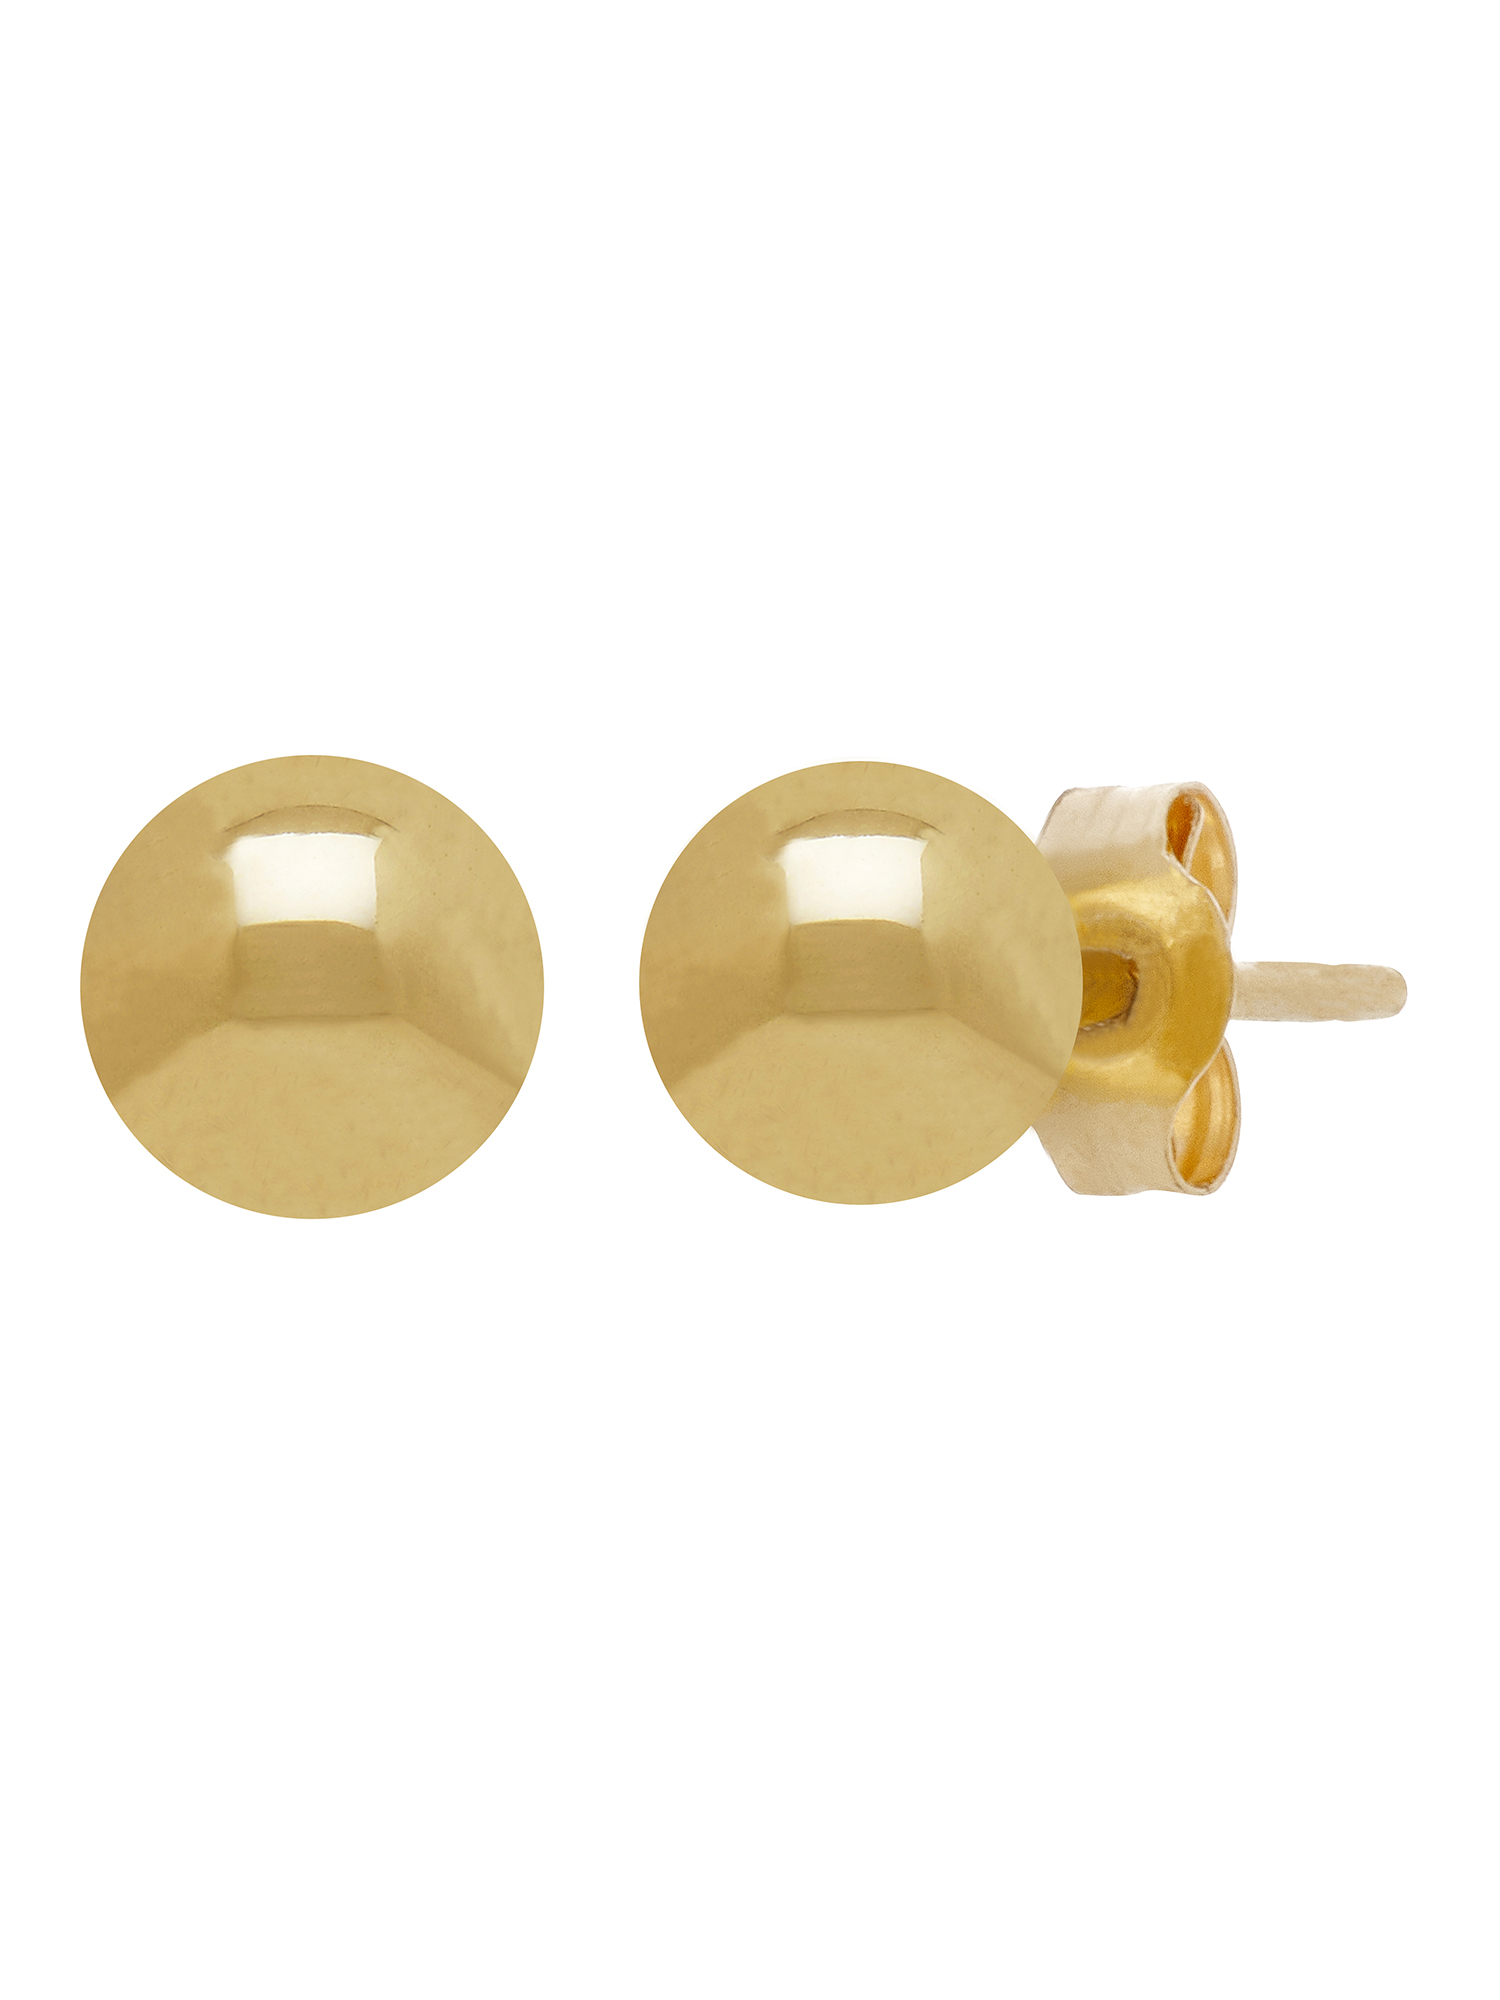 Simply Gold™ 10KT Yellow Gold 5mm Ball Stud Earrings